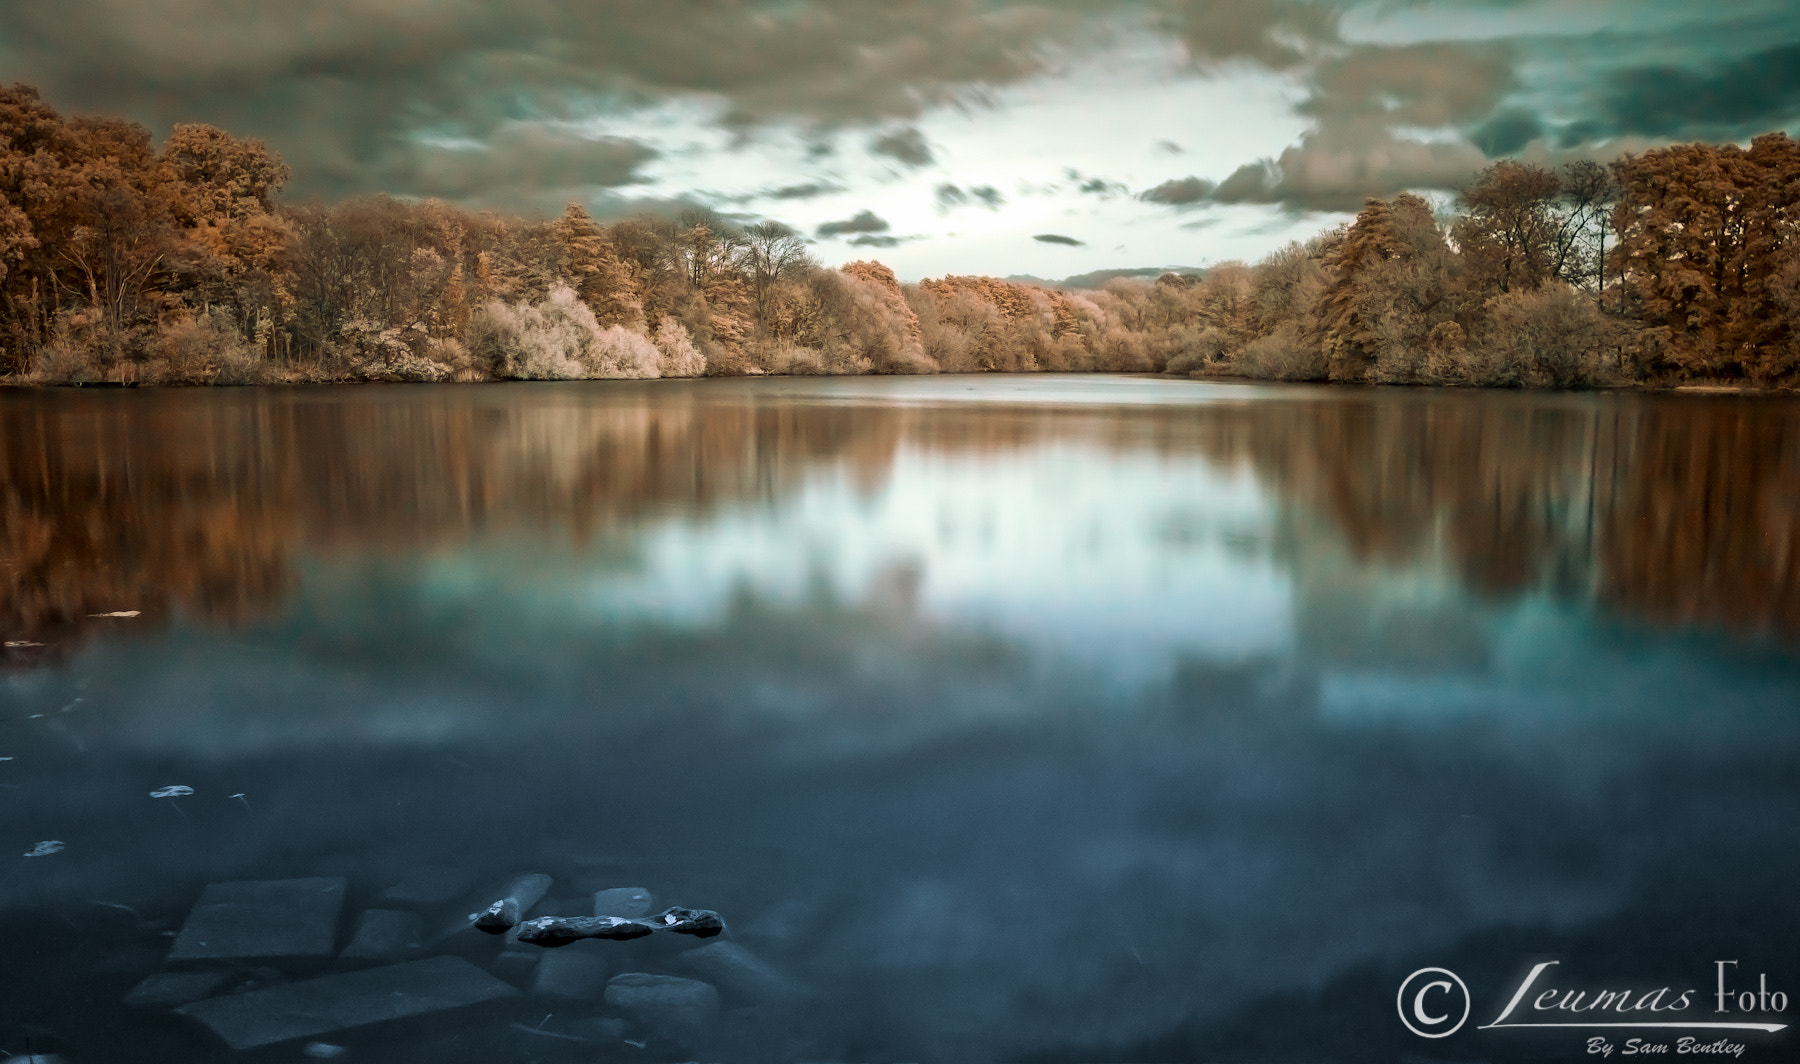 Photograph Still waters landscape in Infrared by Sam Bentley on 500px